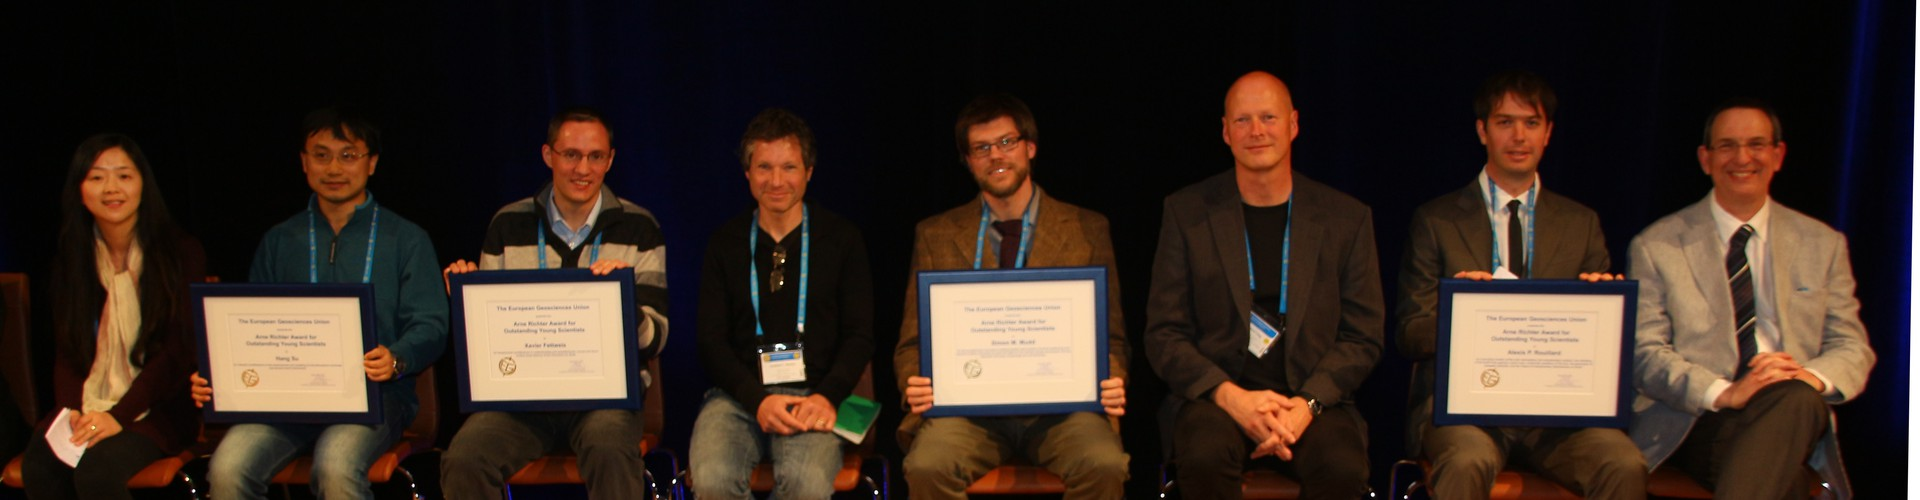 2013 Award Ceremony: Arne Richter awardees and their nominators